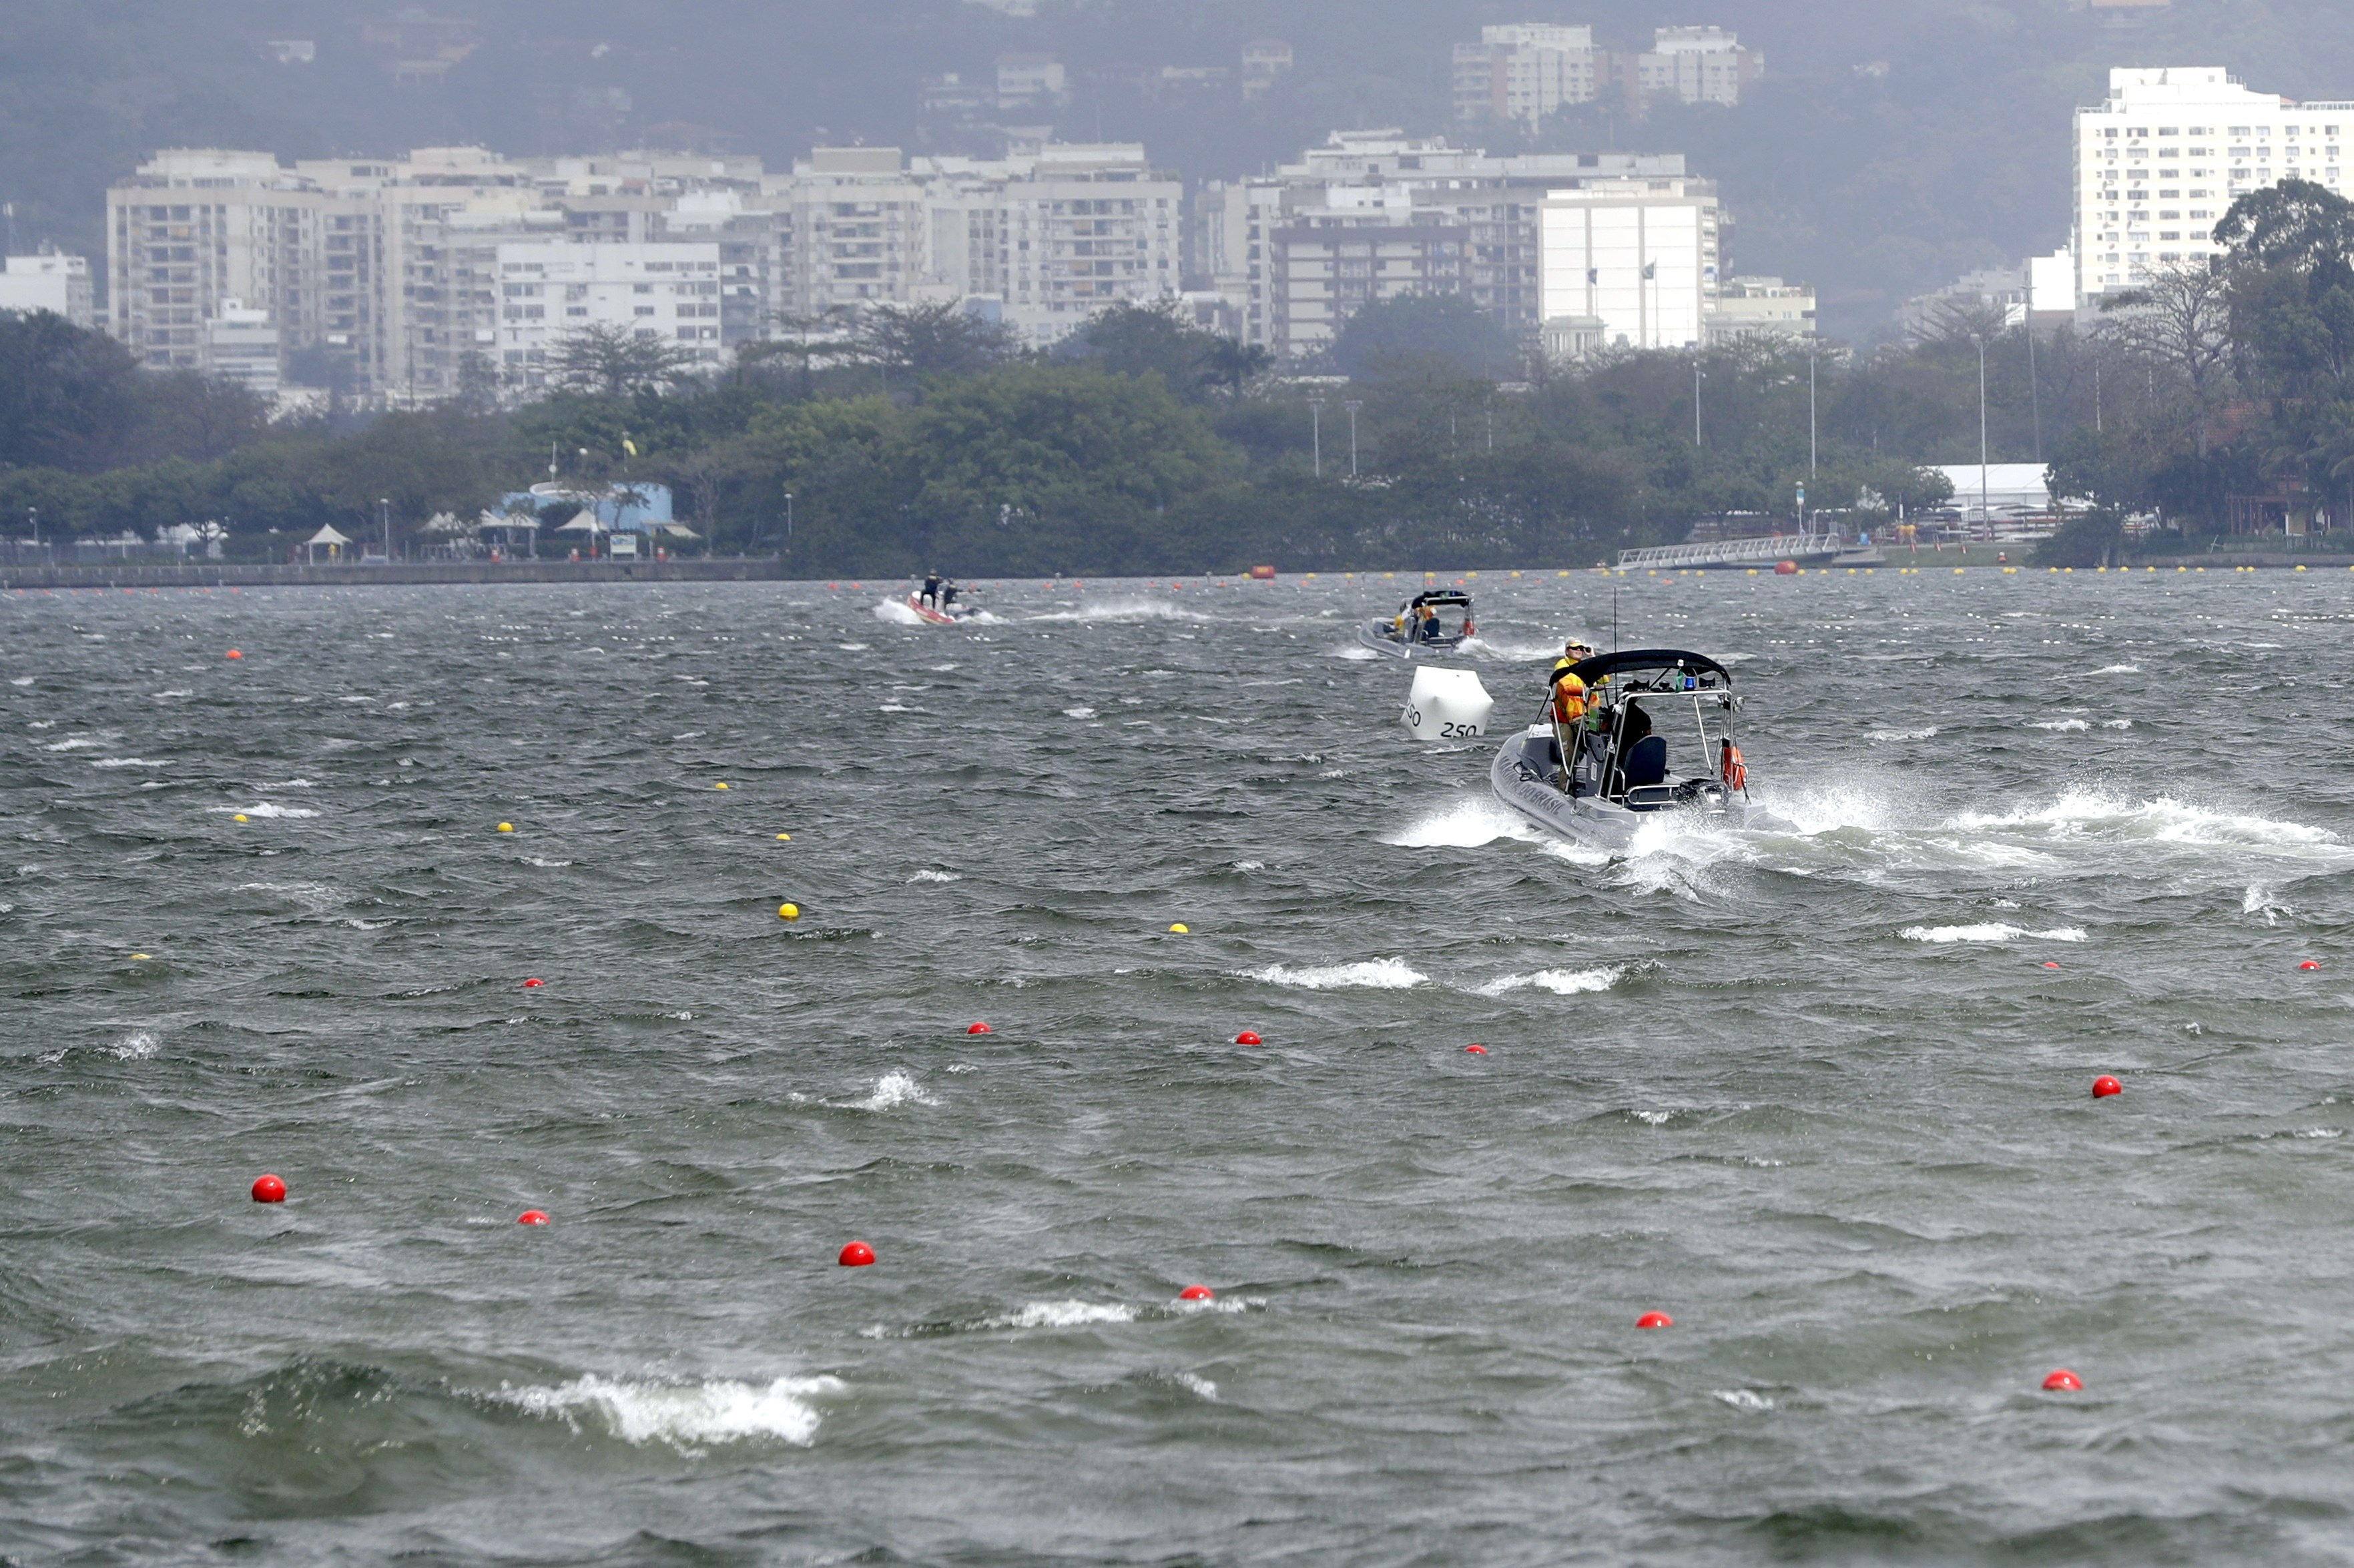 Boats return to dock after removing rowers who were training to shore after high winds postponed their competition for the day at the 2016 Summer Olympics in Rio de Janeiro, Brazil, Sunday, Aug. 7, 2016.(AP Photo/Andre Penner)